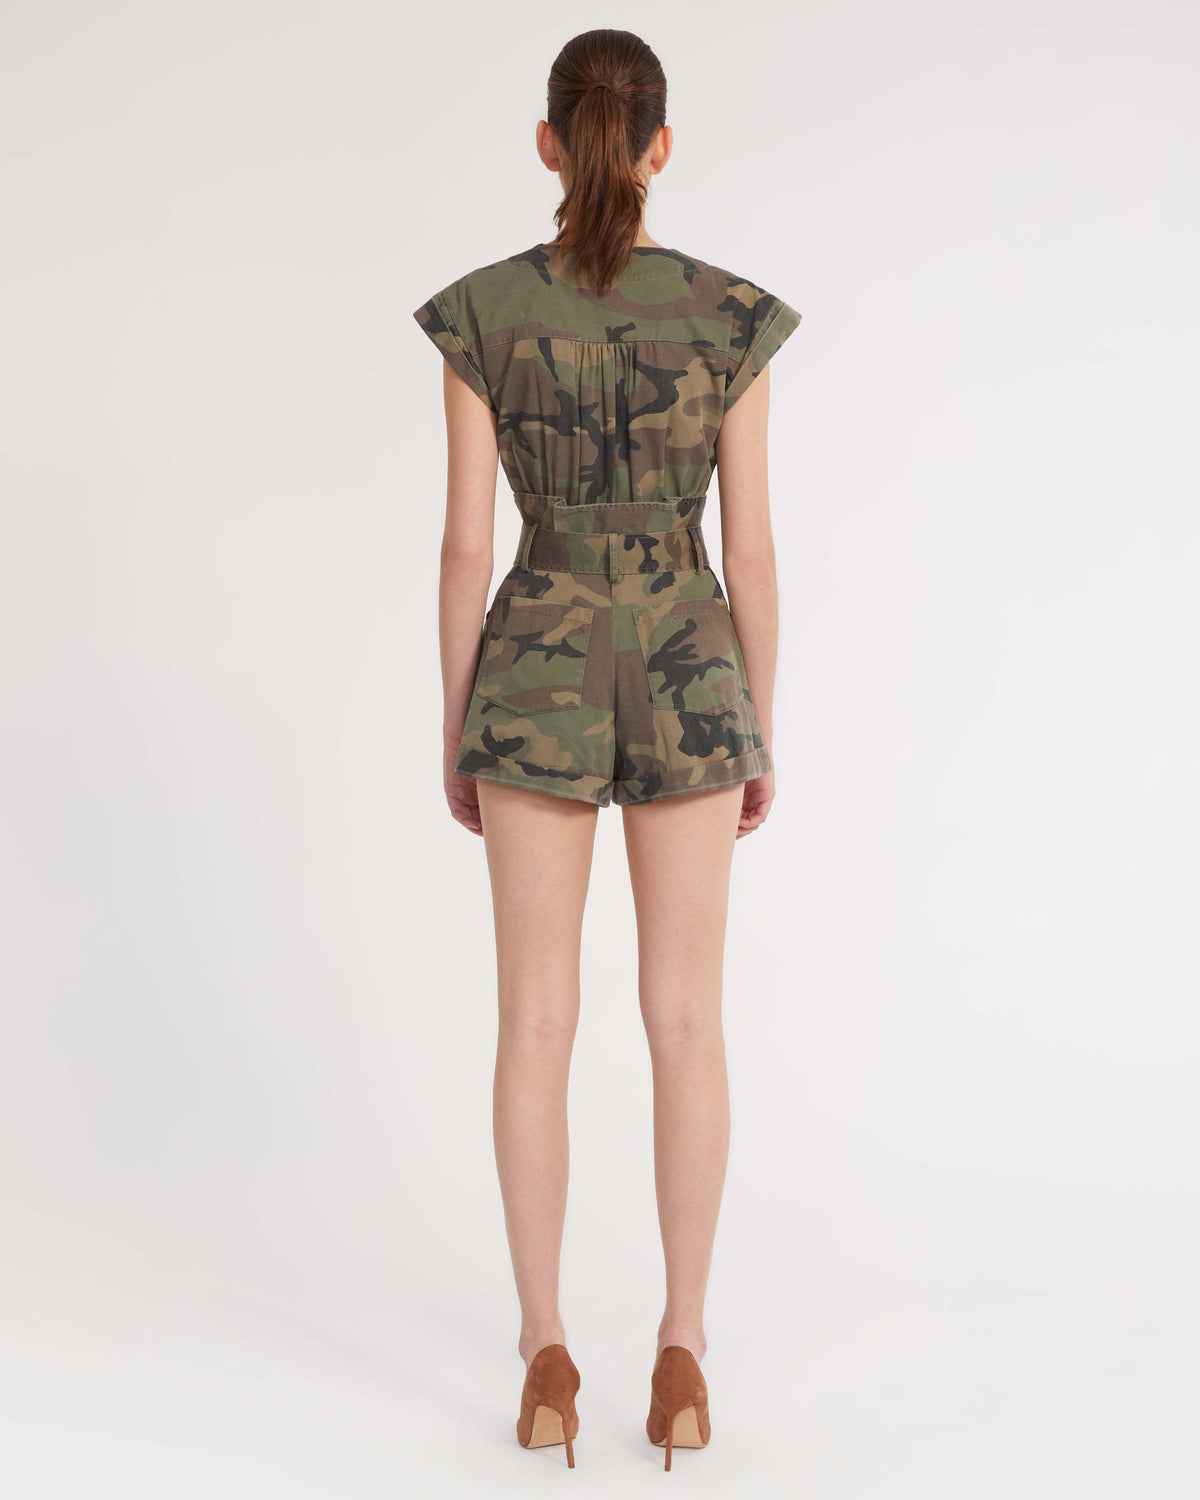 Dixon Paper Bag Vintage Washed Camo Romper in Woodland Camo